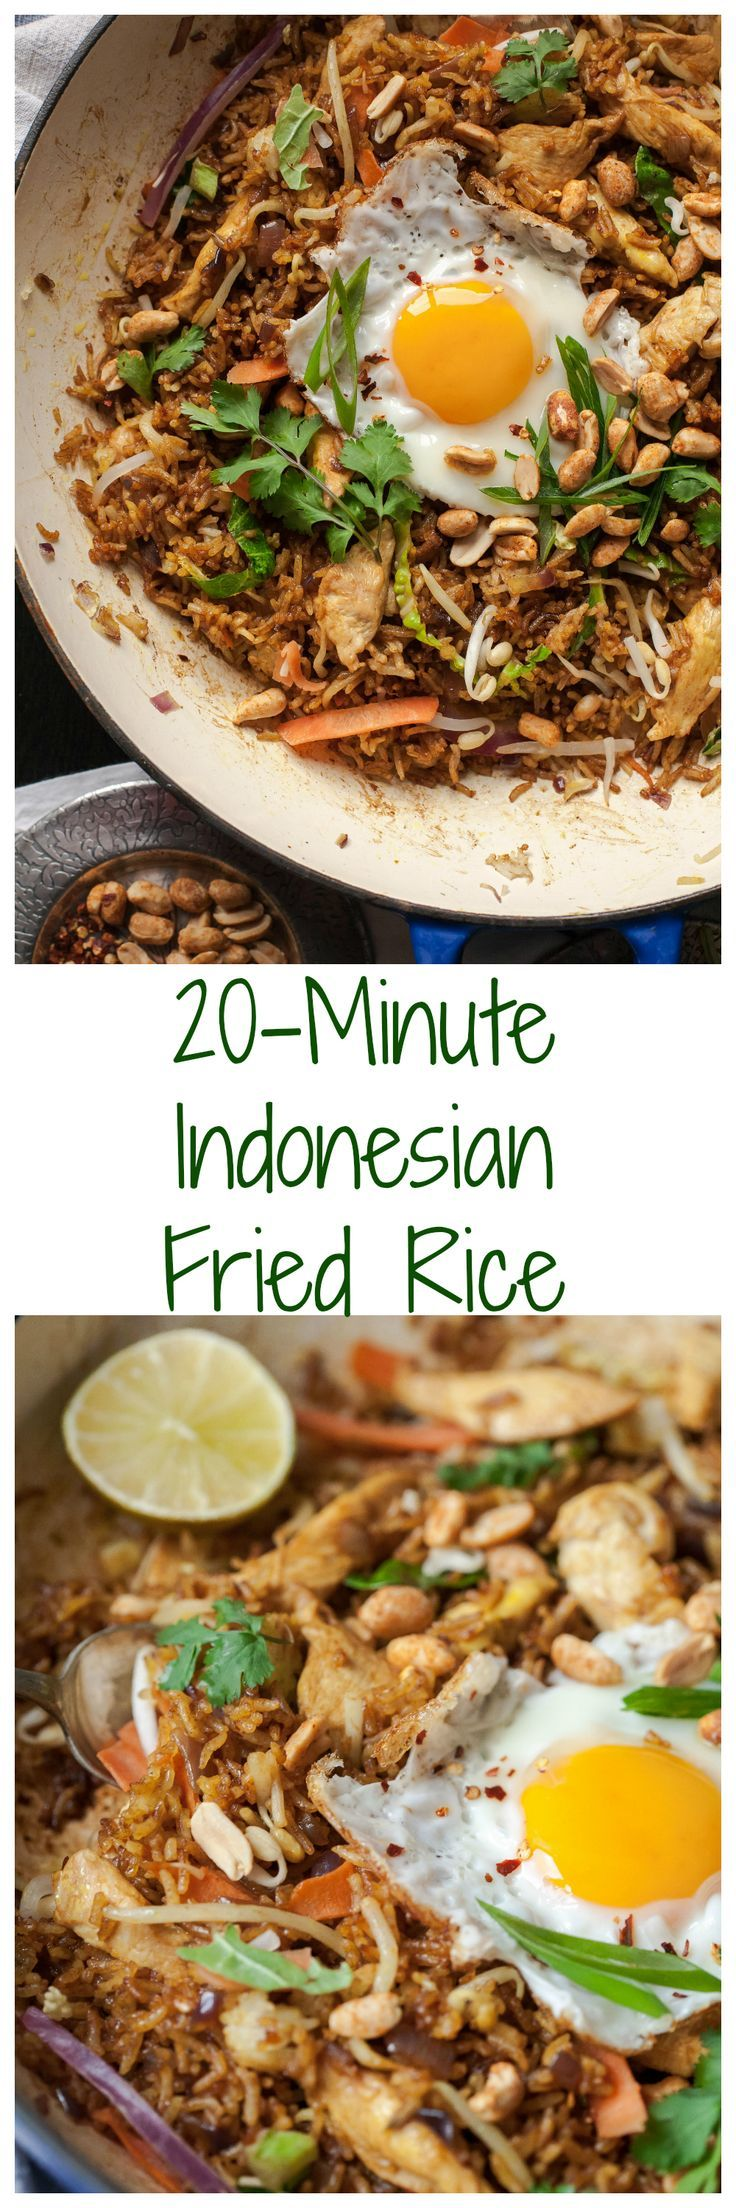 Skip the takeout and make this 20-Minute Indonesian Fried Rice Nasi Goreng instead!